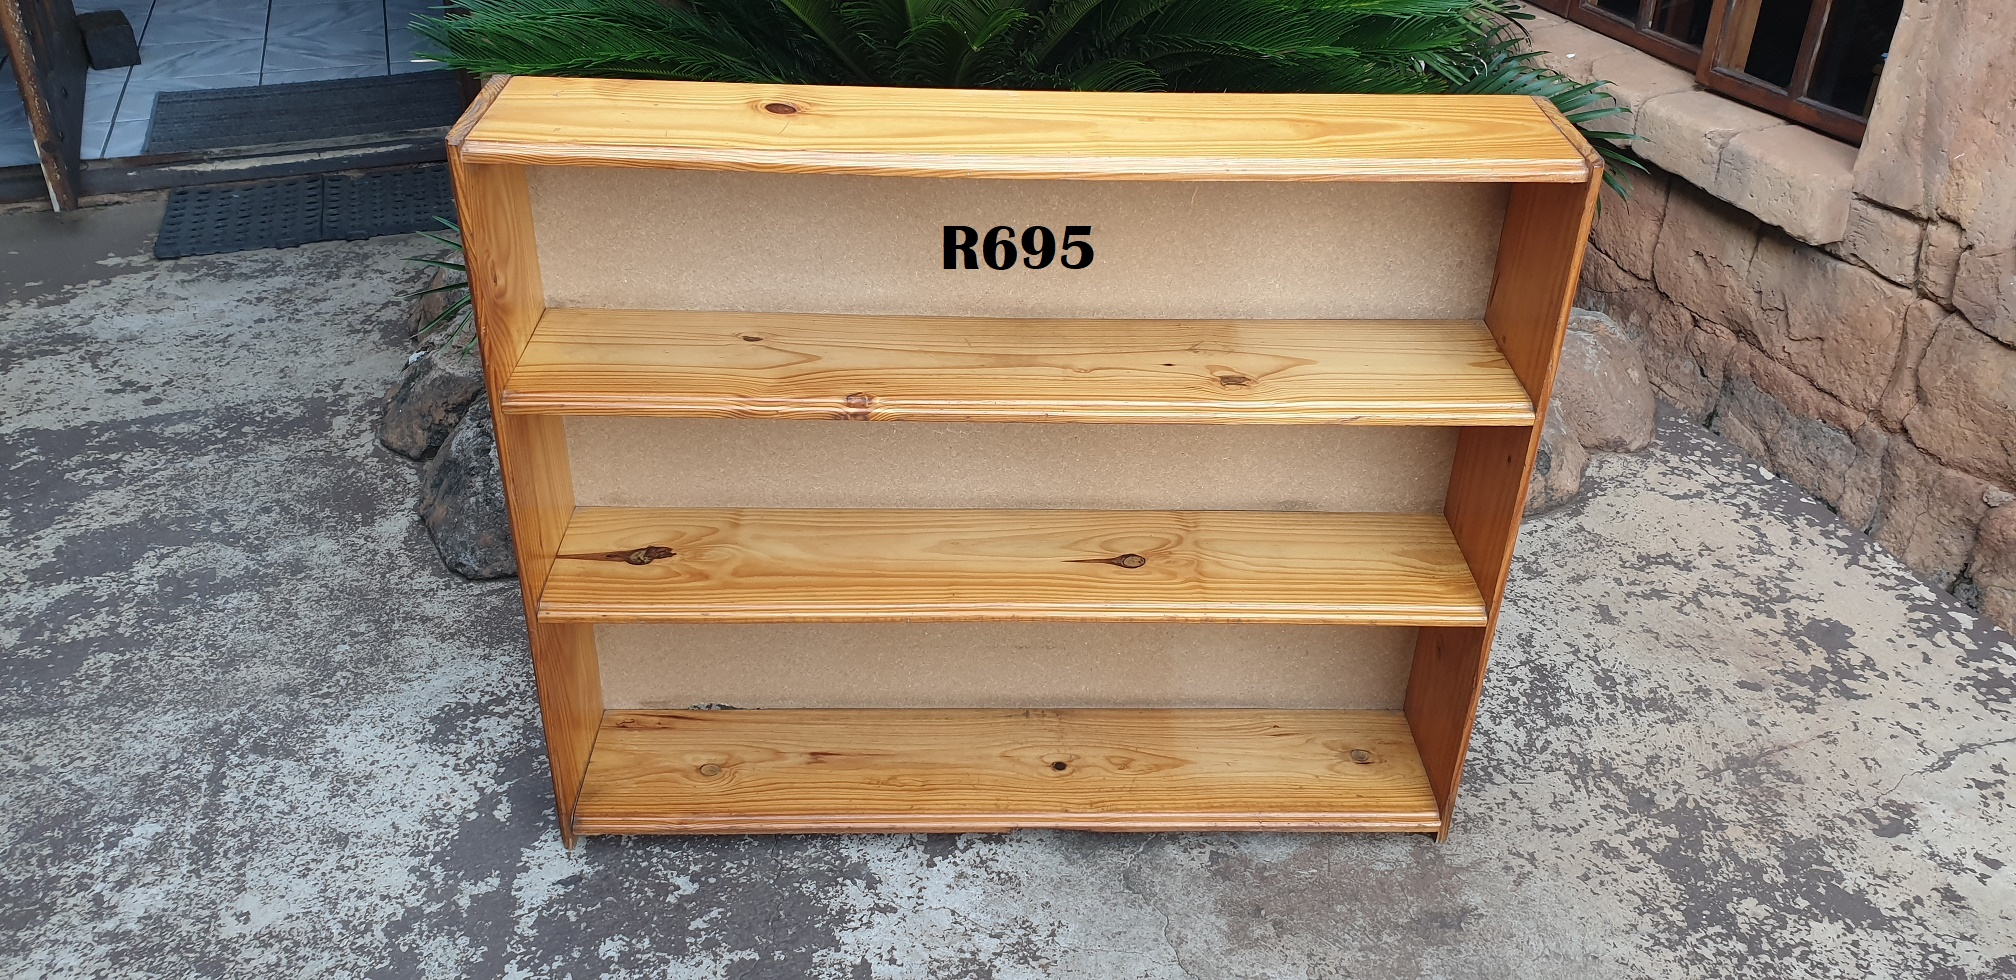 3 Tier Solid Pine Bookrack (1140x215x945)